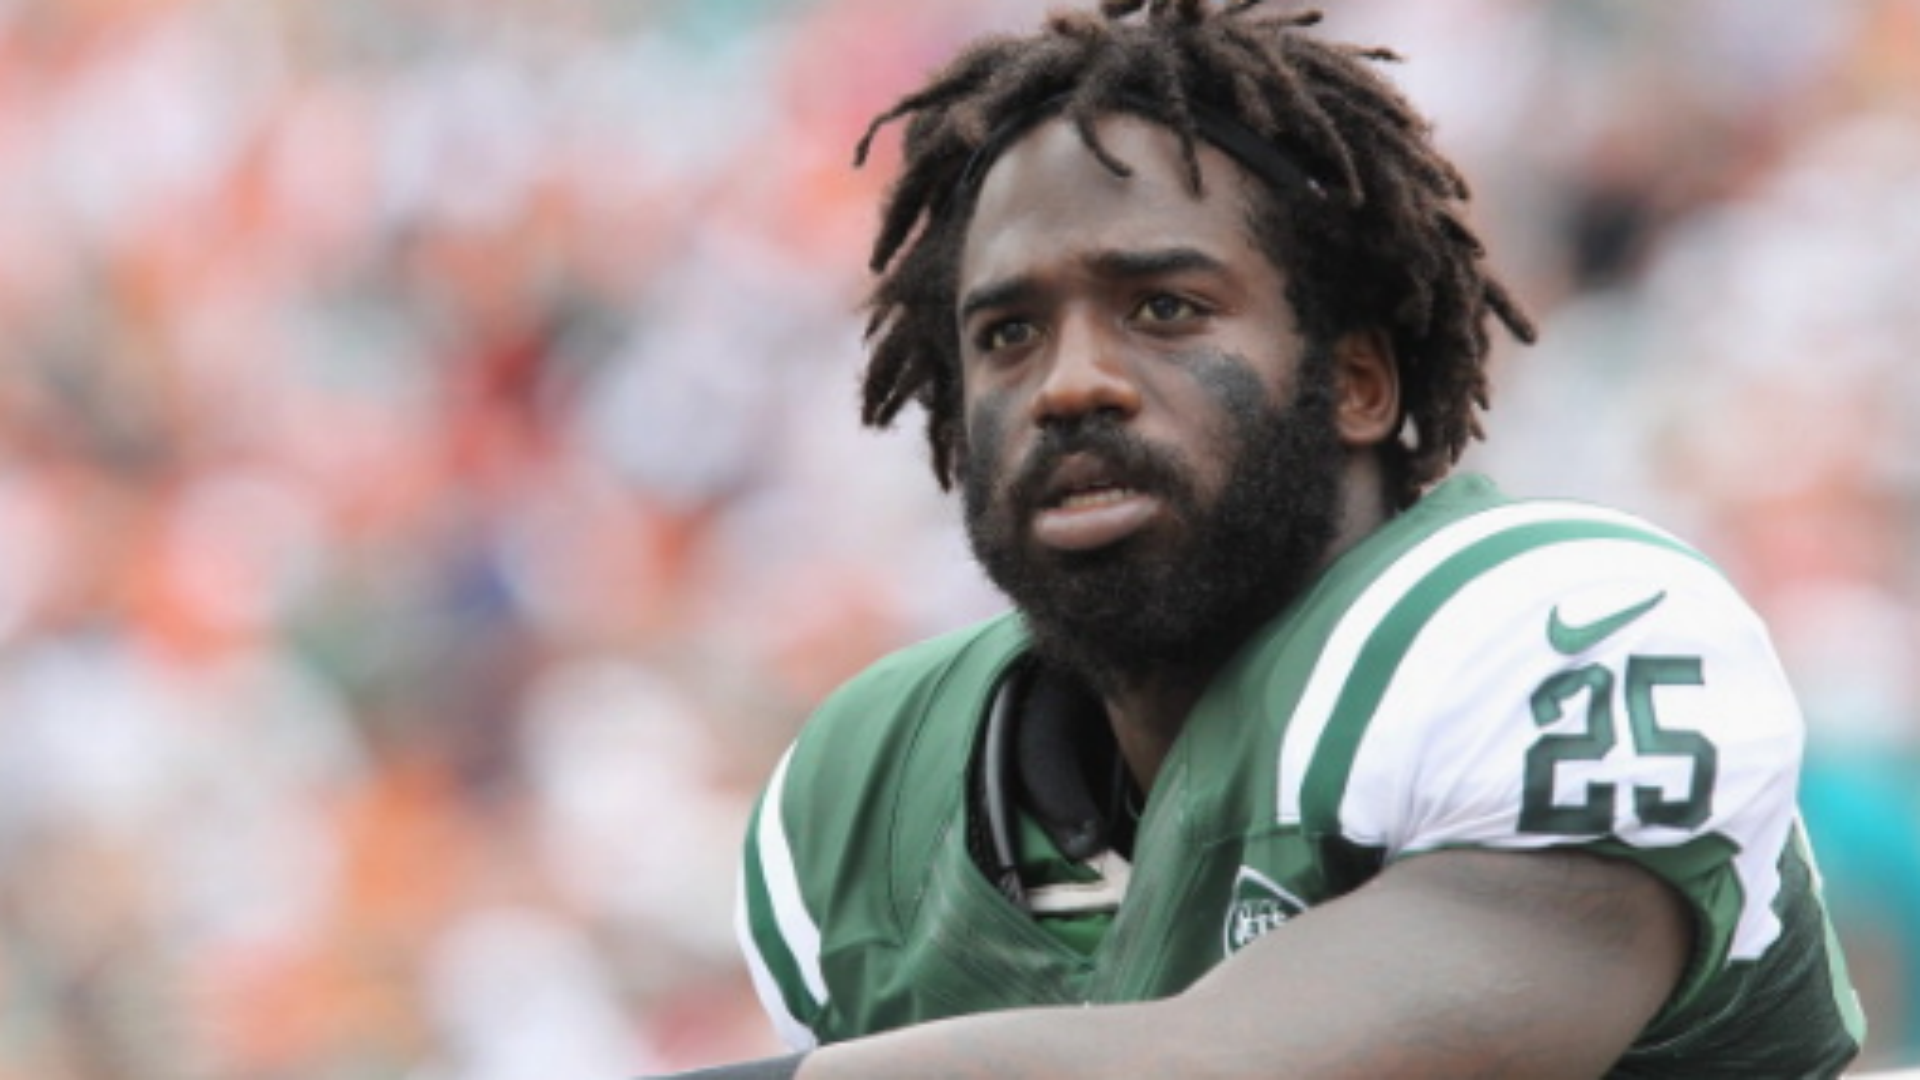 Man Who Killed Ex-NFL Player Was Released